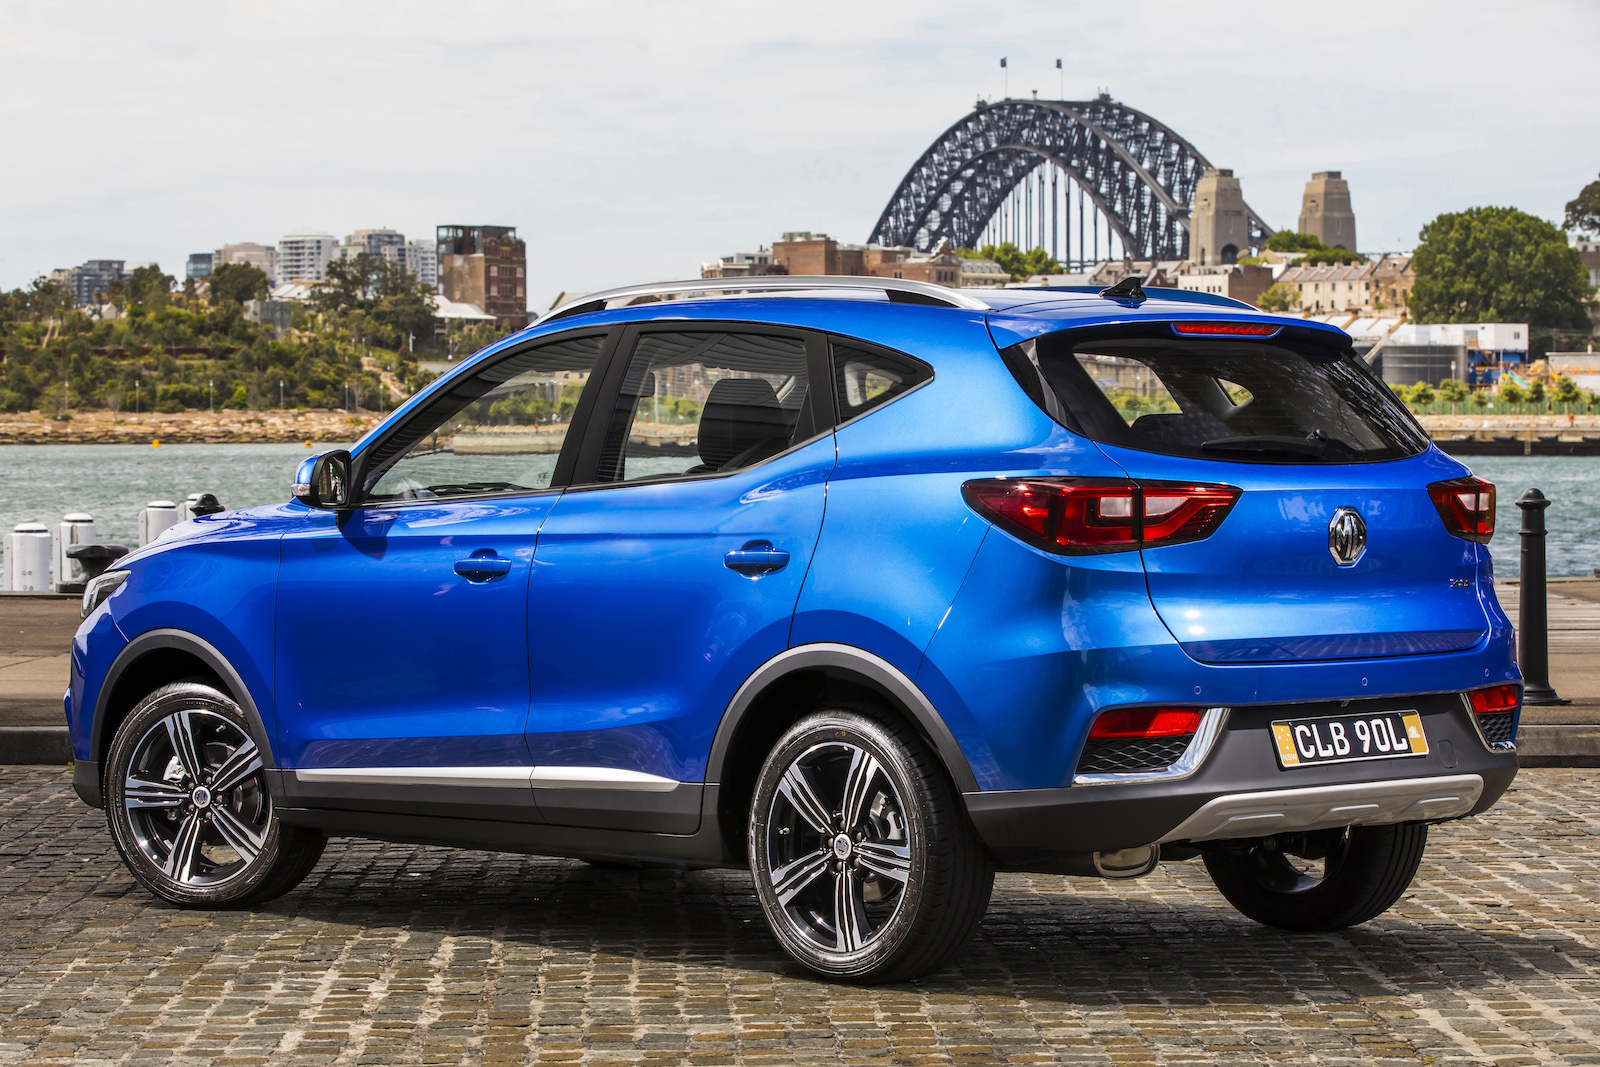 News - MG Details 2018 ZS SUV, $20,990 Onwards